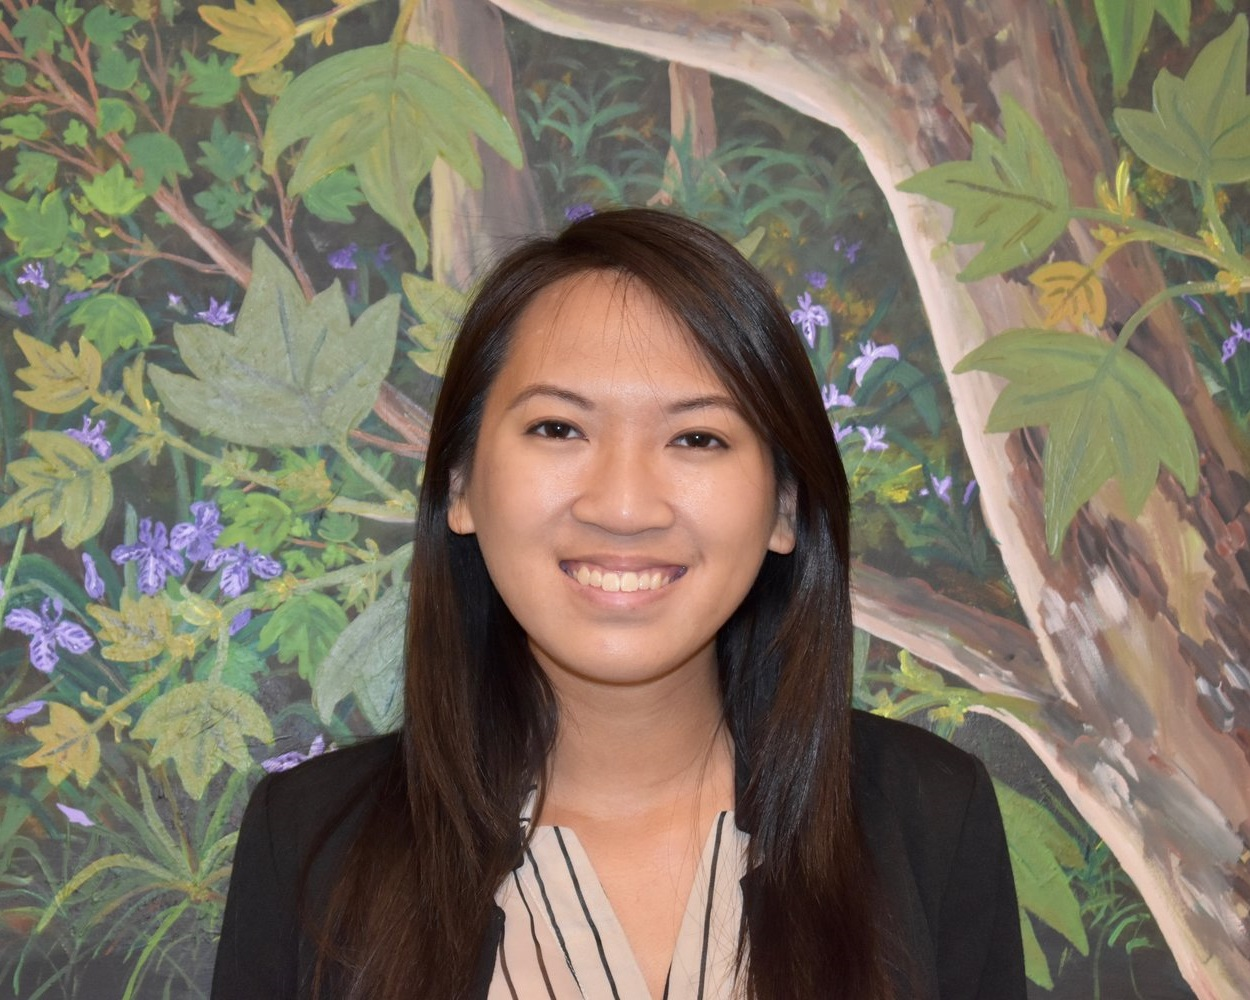 Thai-Han Nguyen - Thai-Han Nguyen has been working at Creative Identity as the Administrative Assistant since May 2017. She received her Bachelor's of Science in Health Science: Community Health Option from California State University, Long Beach (CSULB). She had experience as Secretary of the Health Science Student Association at CSULB and has collaborated and volunteered with organizations in the community such Alzheimer's Association, American Red Cross, and Second Harvest Food Bank.